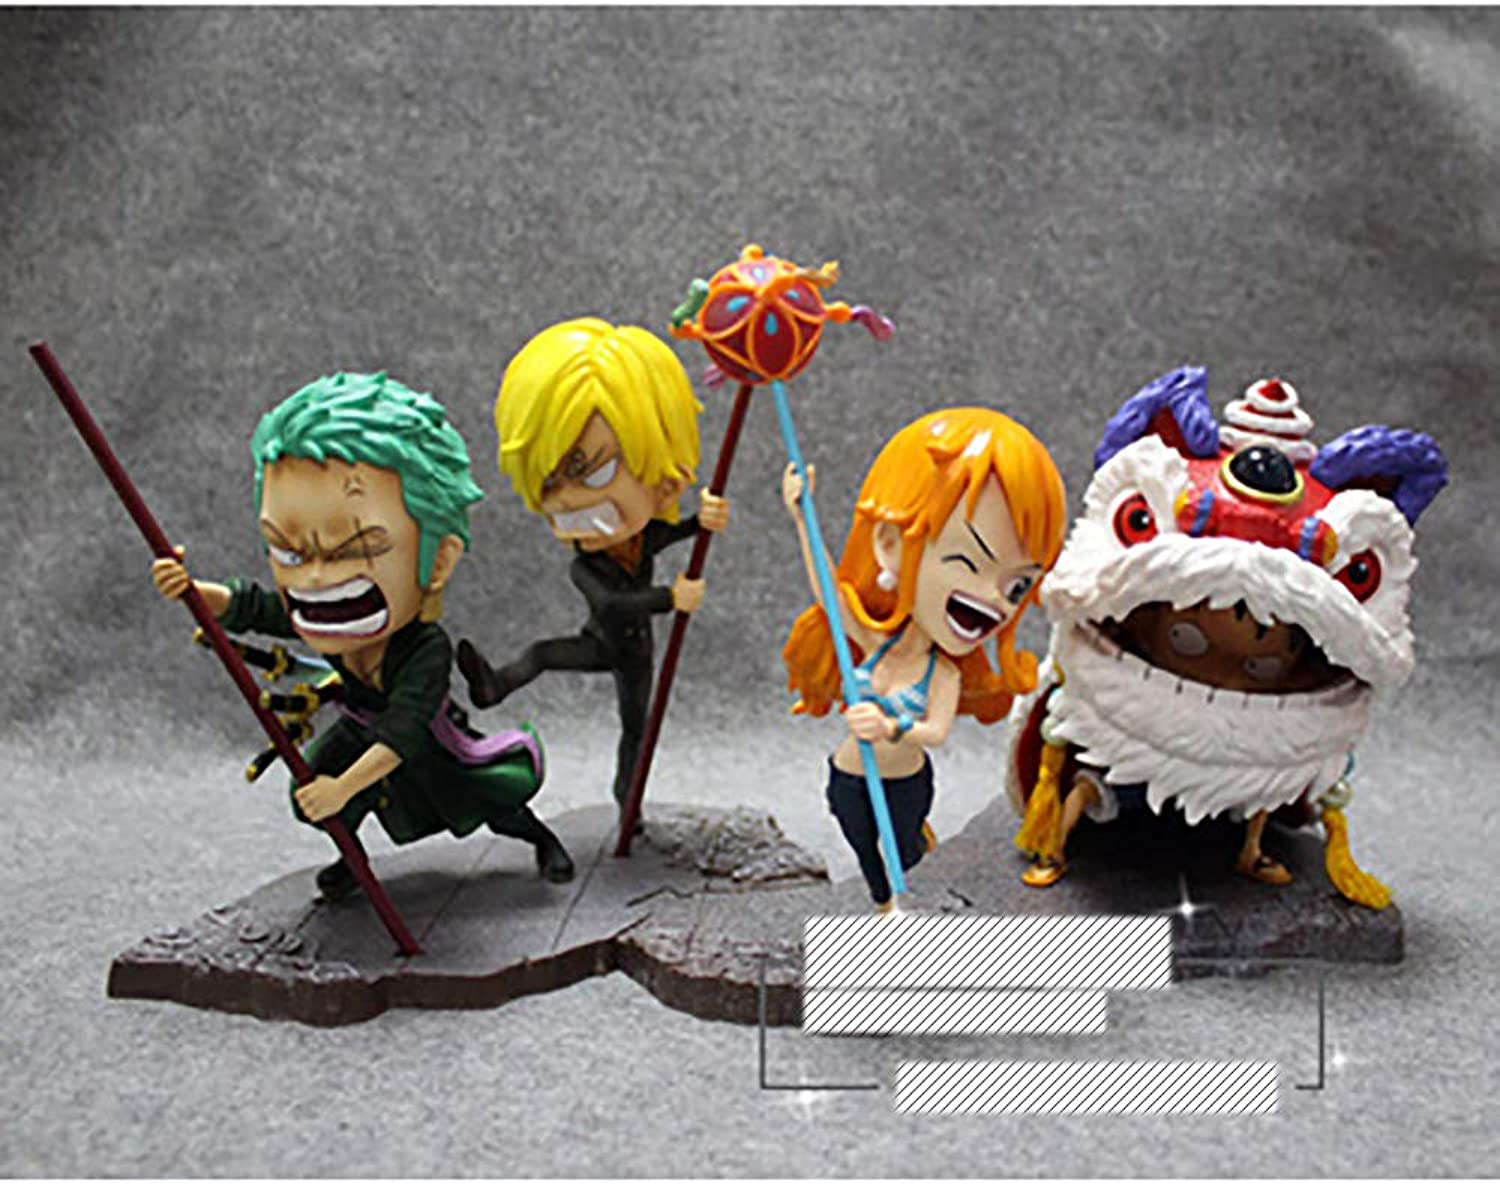 KUHU One Piece Anime Model Spring Festival Spring Festival Dragon and Lion Dance Hand Model Decoration Sauron 4 people